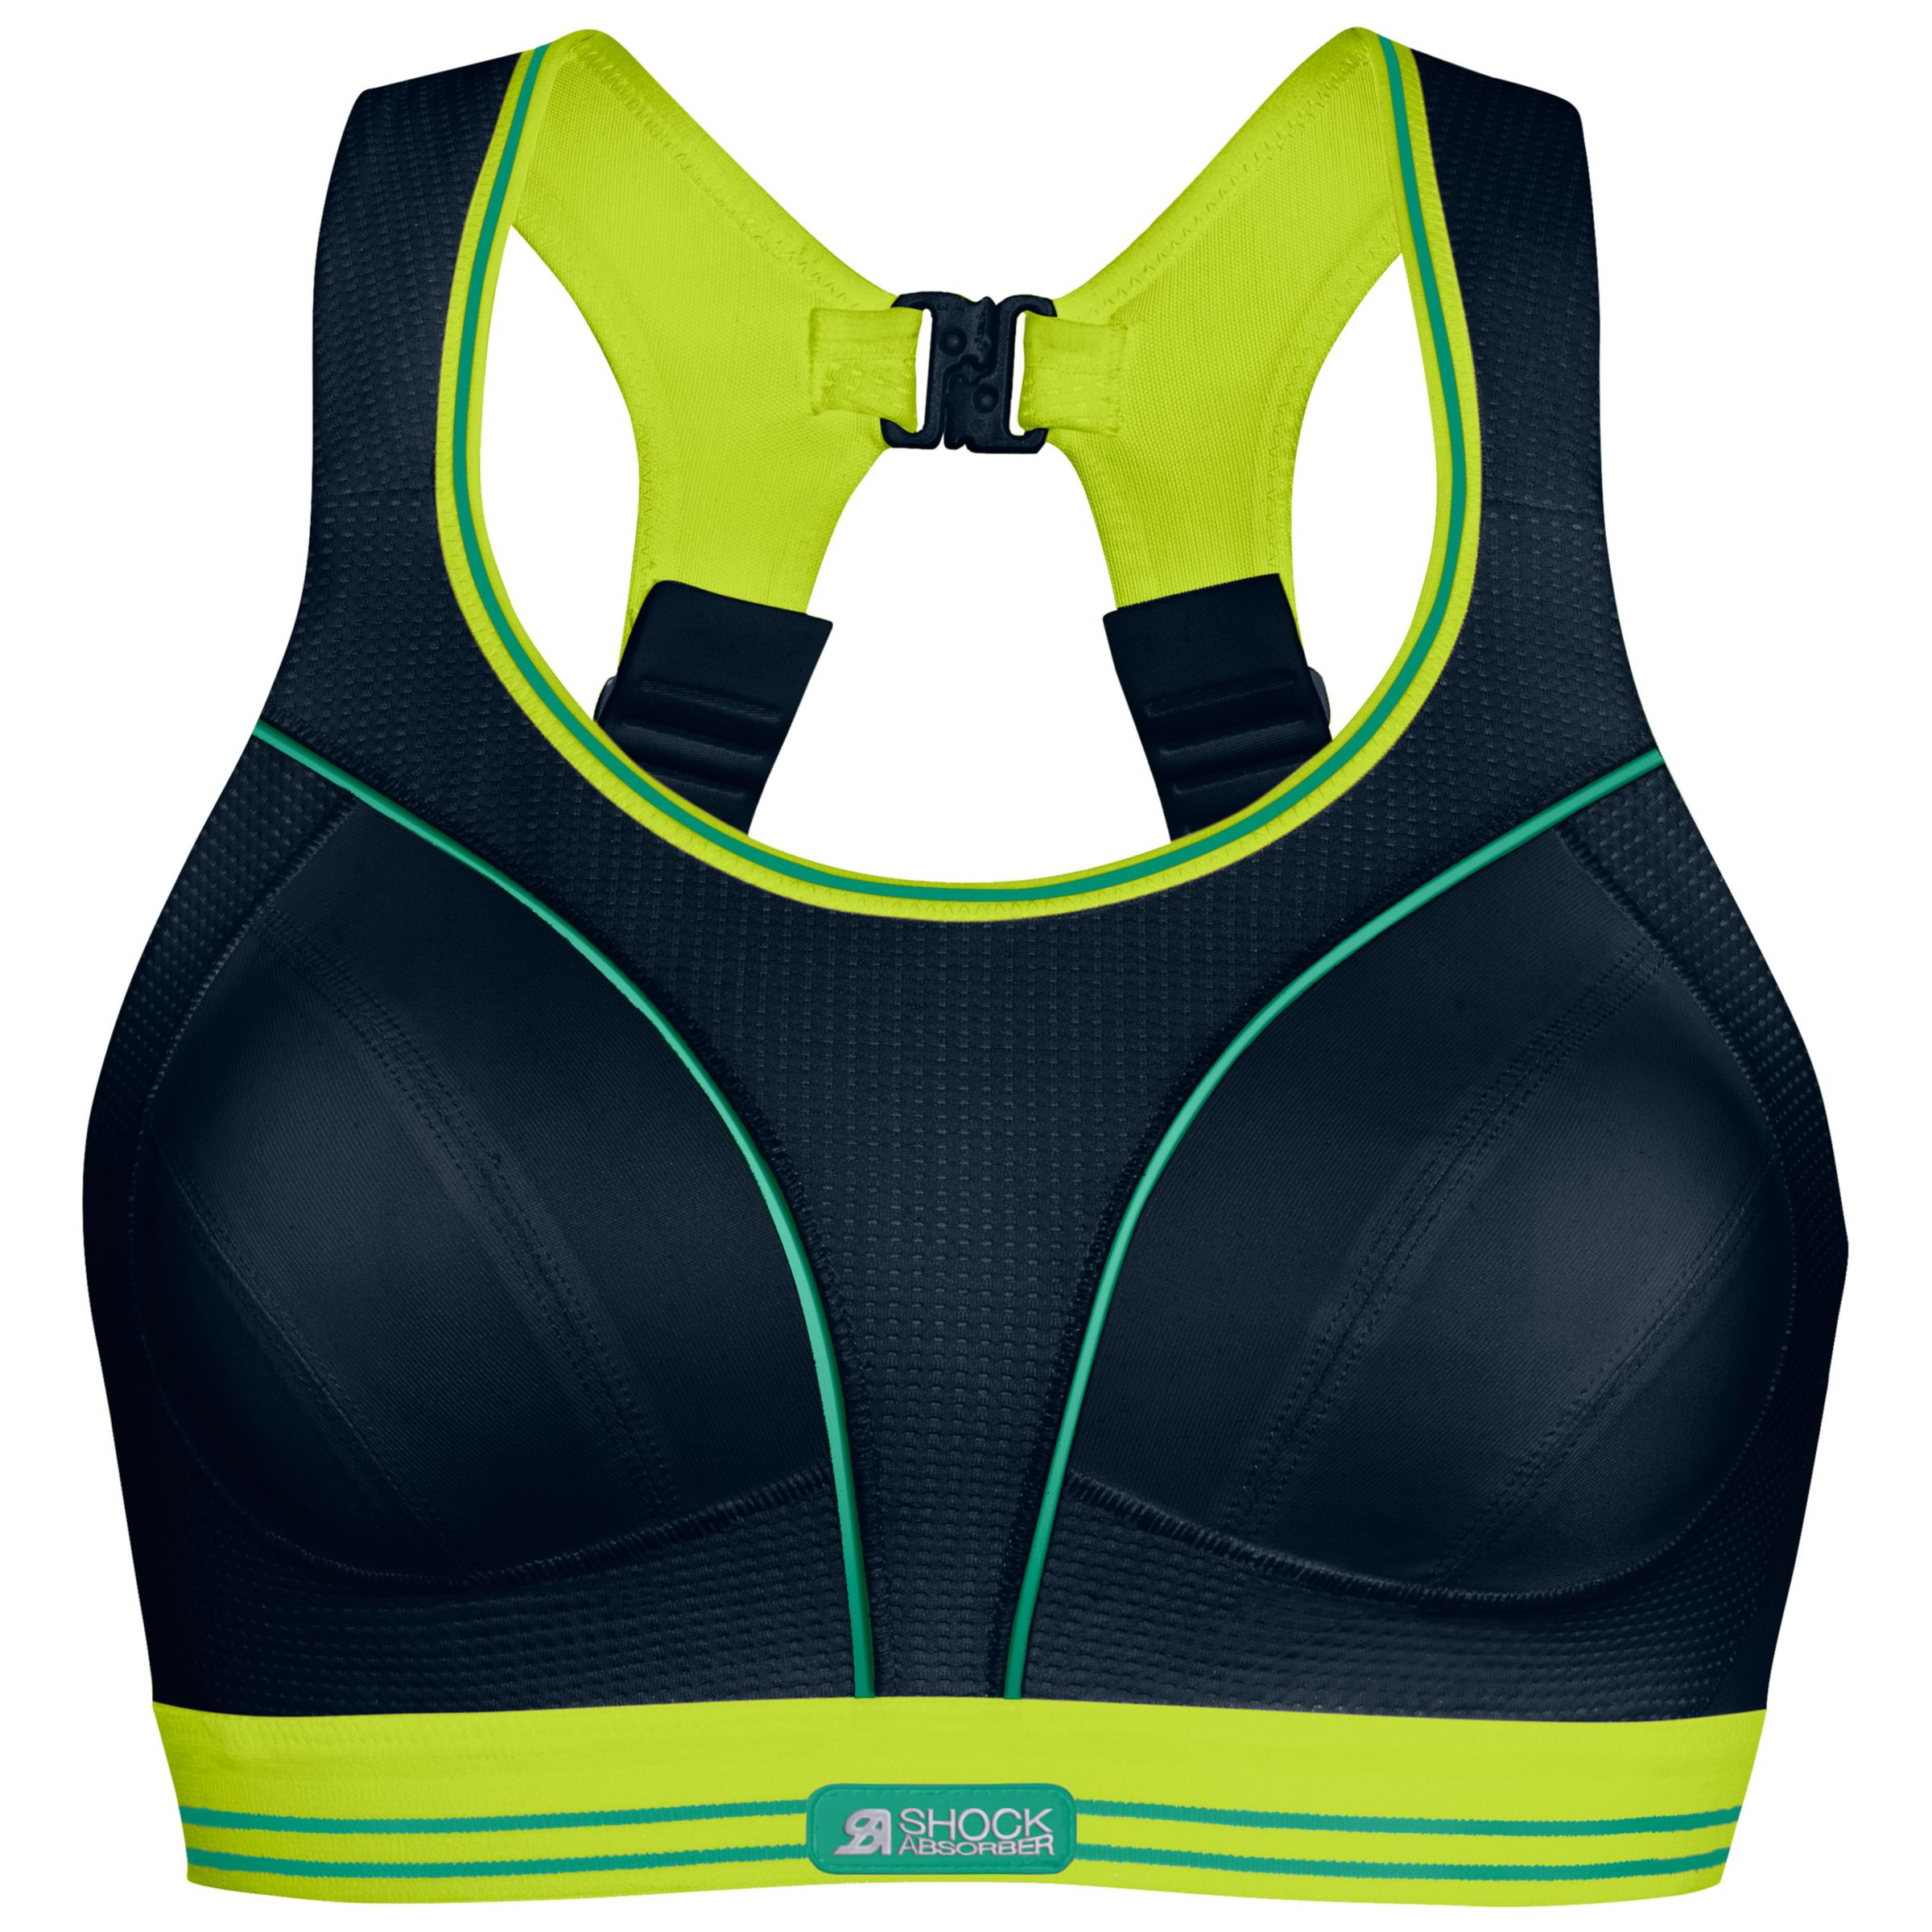 Shock Absorber Shock Absorber Ultimate Run Non-Wired Sports Bra, Black/Lime